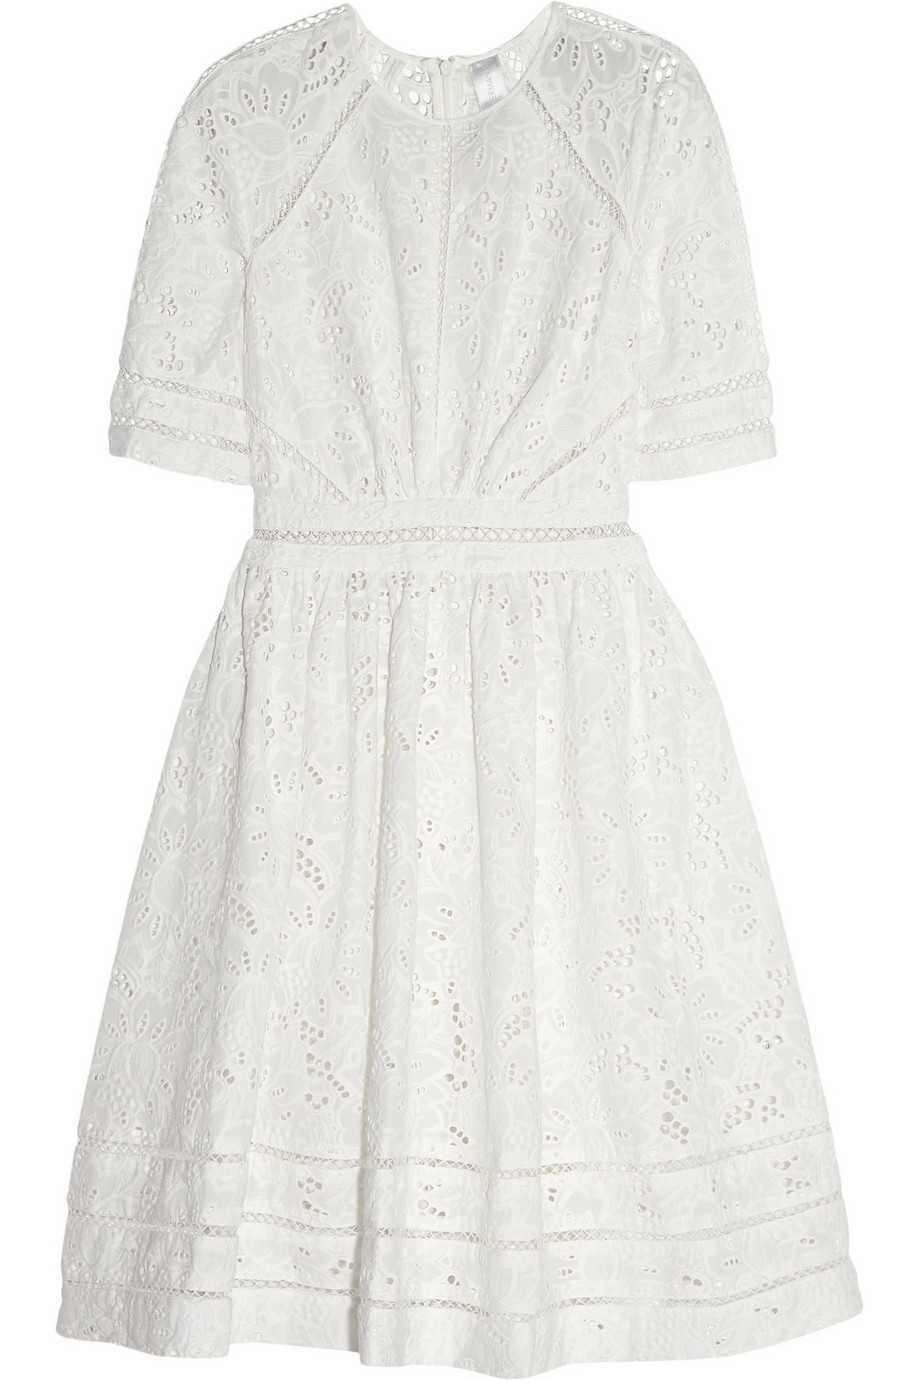 A super special smock dress, Lilou is packed with fun and frills. With a chic high neck, trimmed with a pearl button at the keyhole back, plus a frilled yoke and cropped sleeves, this delicate all-over broderie anglaise lined dress is an easy breezy way to style your summer.